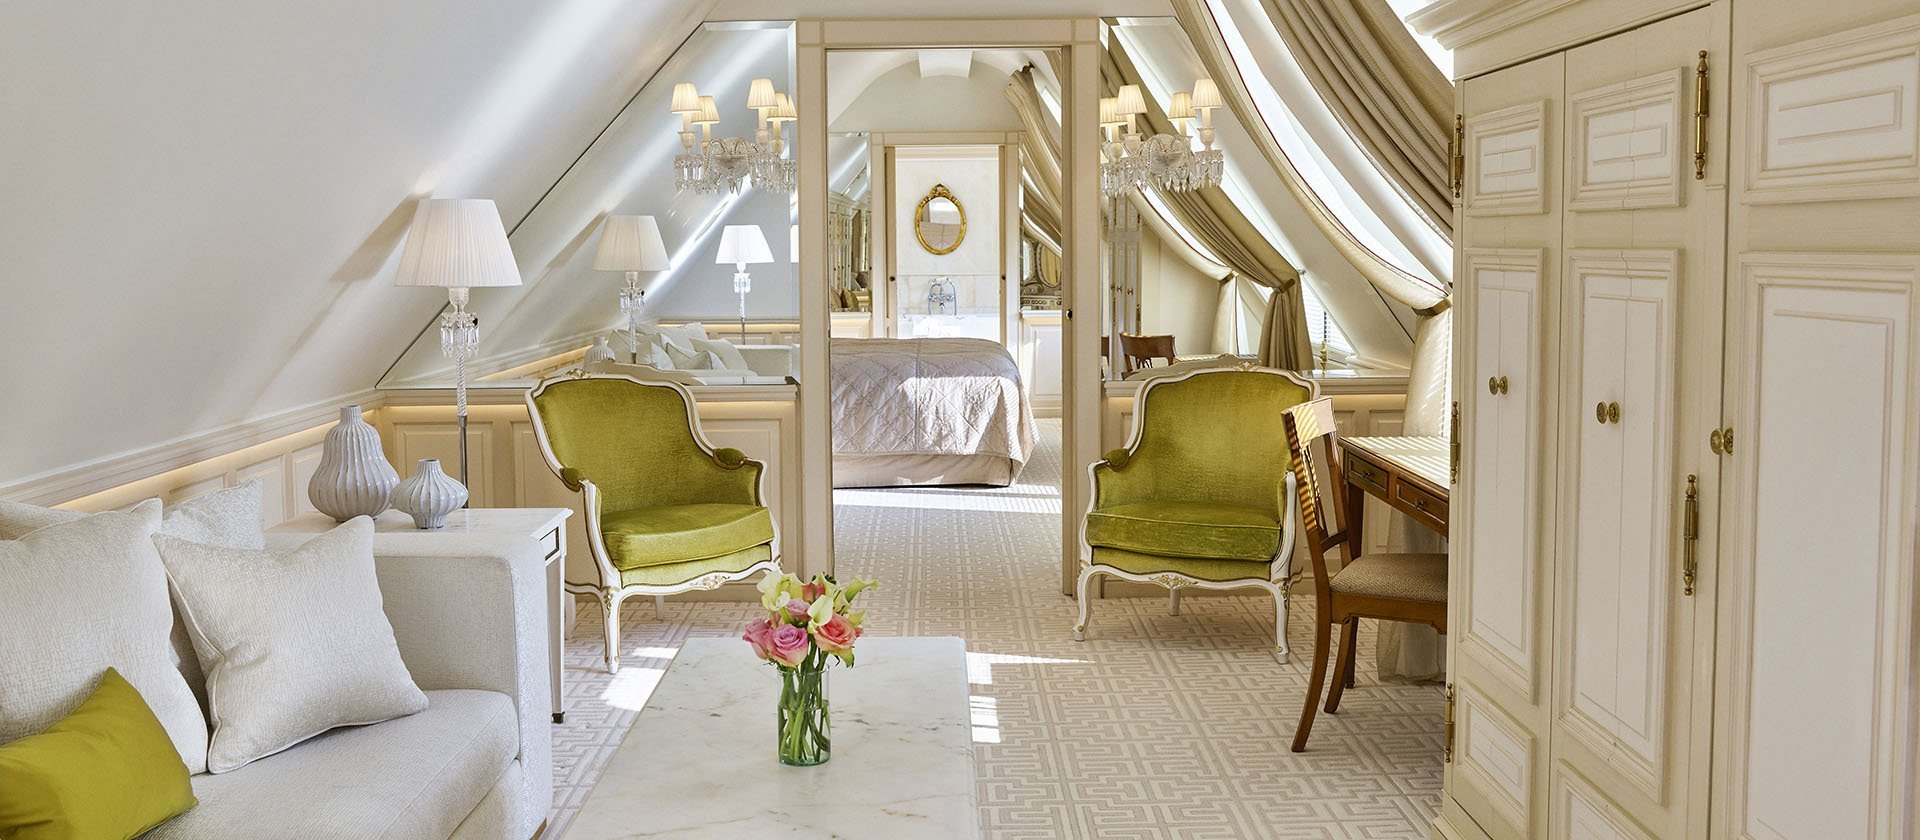 La Parisienne suite and Le Meurice with white and yellow interior